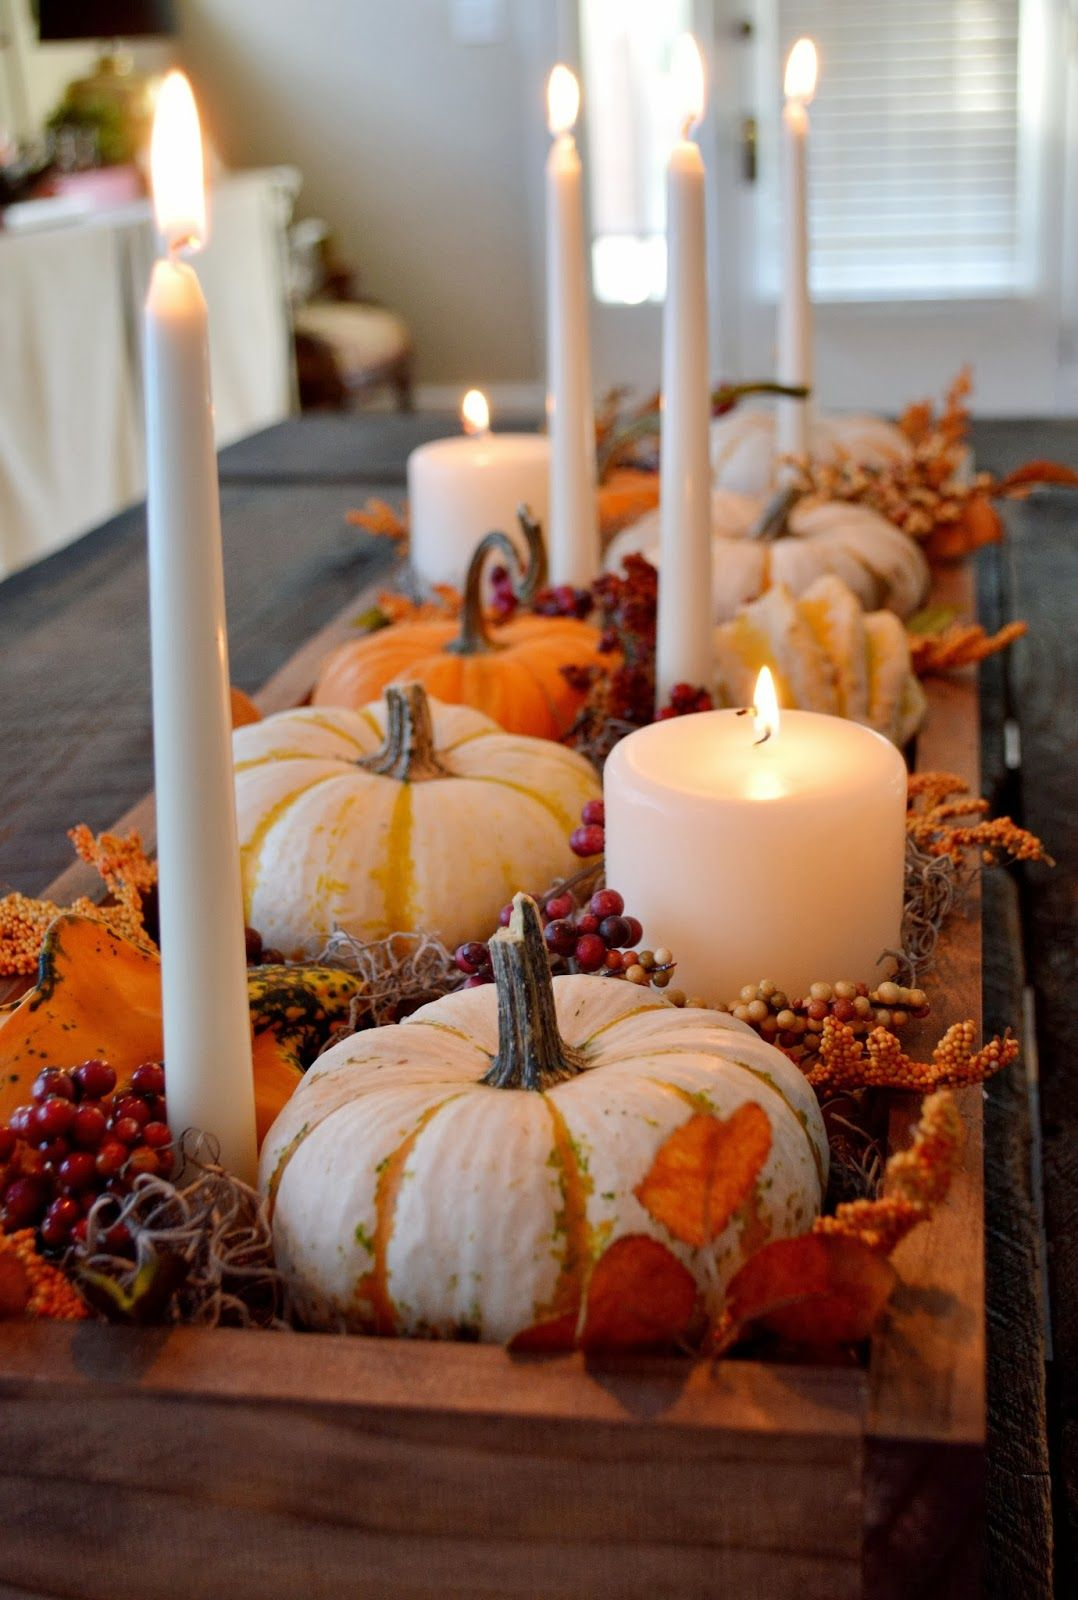 Simple fall table decorating ideas - 18 Lovely Thanksgiving Table Ideas